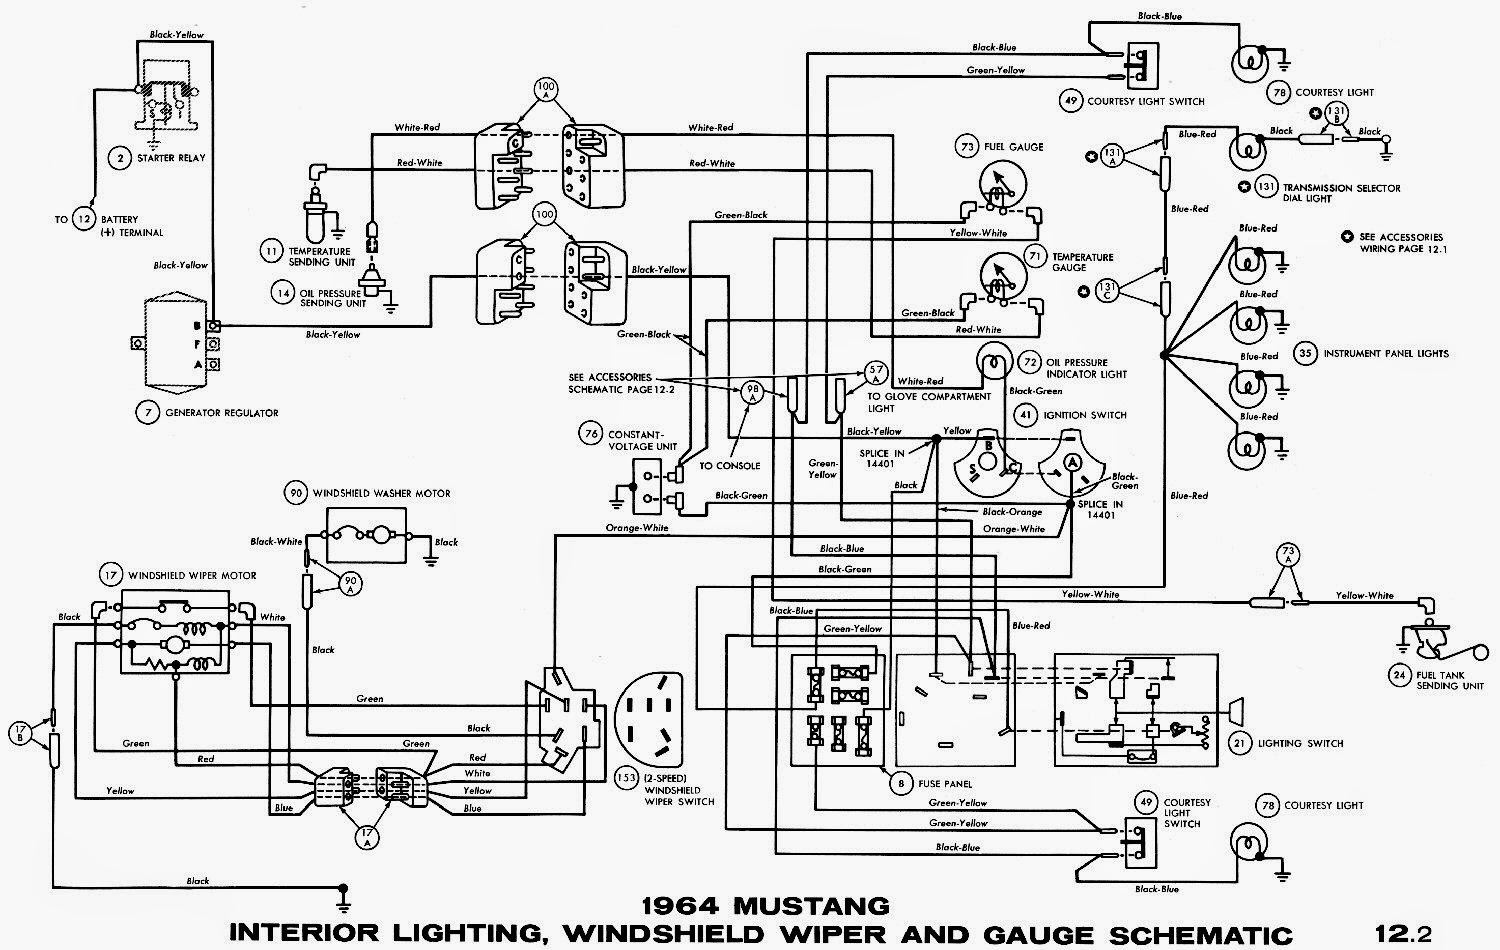 2015 Mustang Wiring Diagram Wiring Library Inswebco